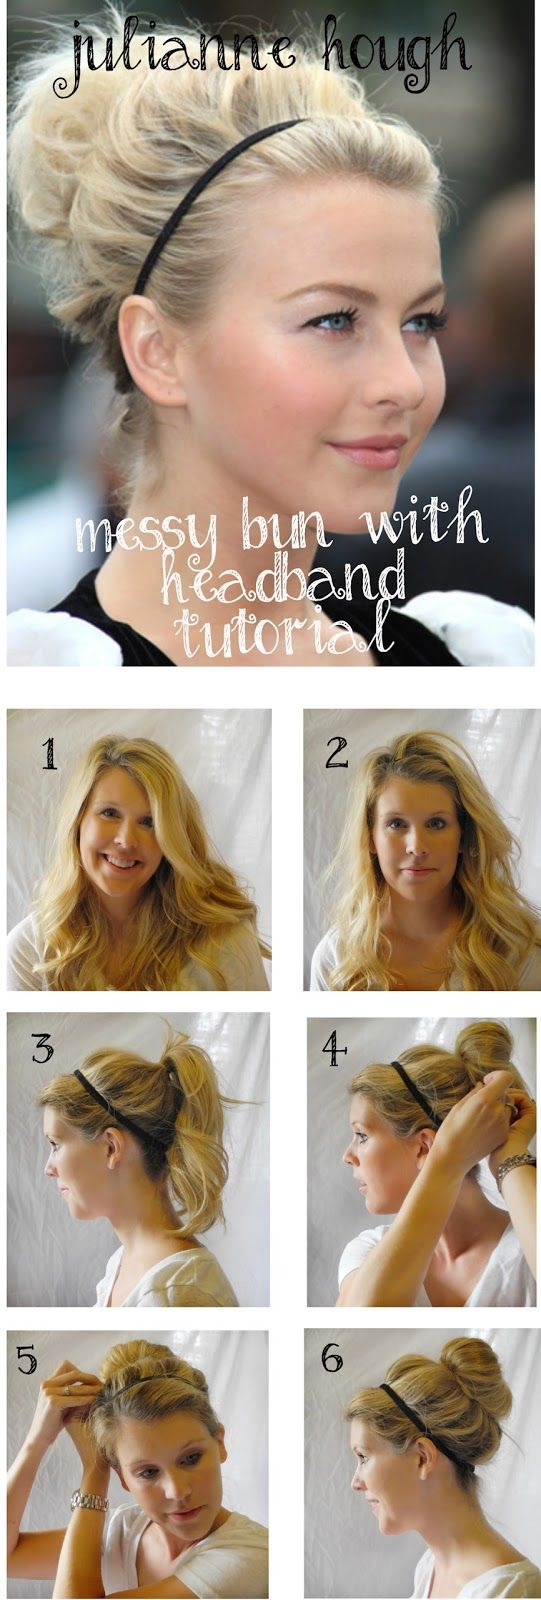 best gotta try thisauty tricks etc images on pinterest